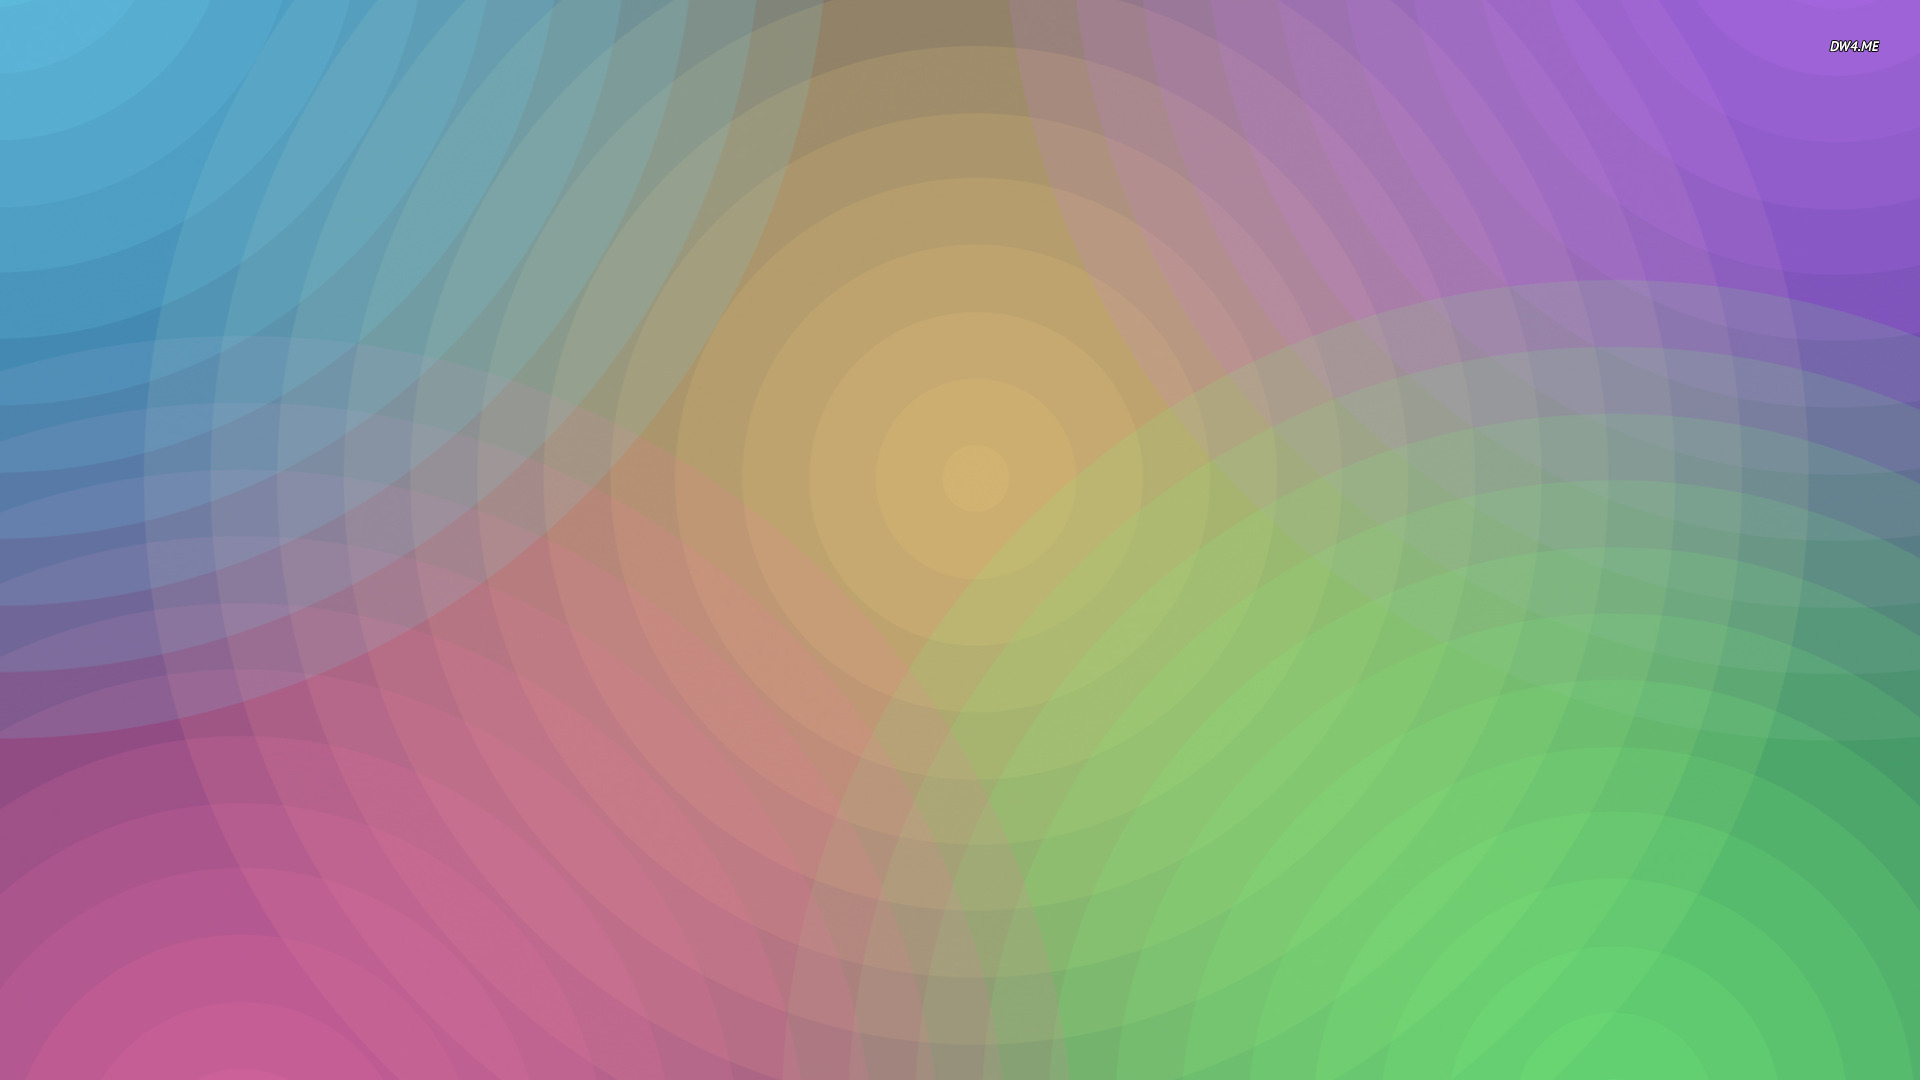 Abstract Pastel Color Background Hd